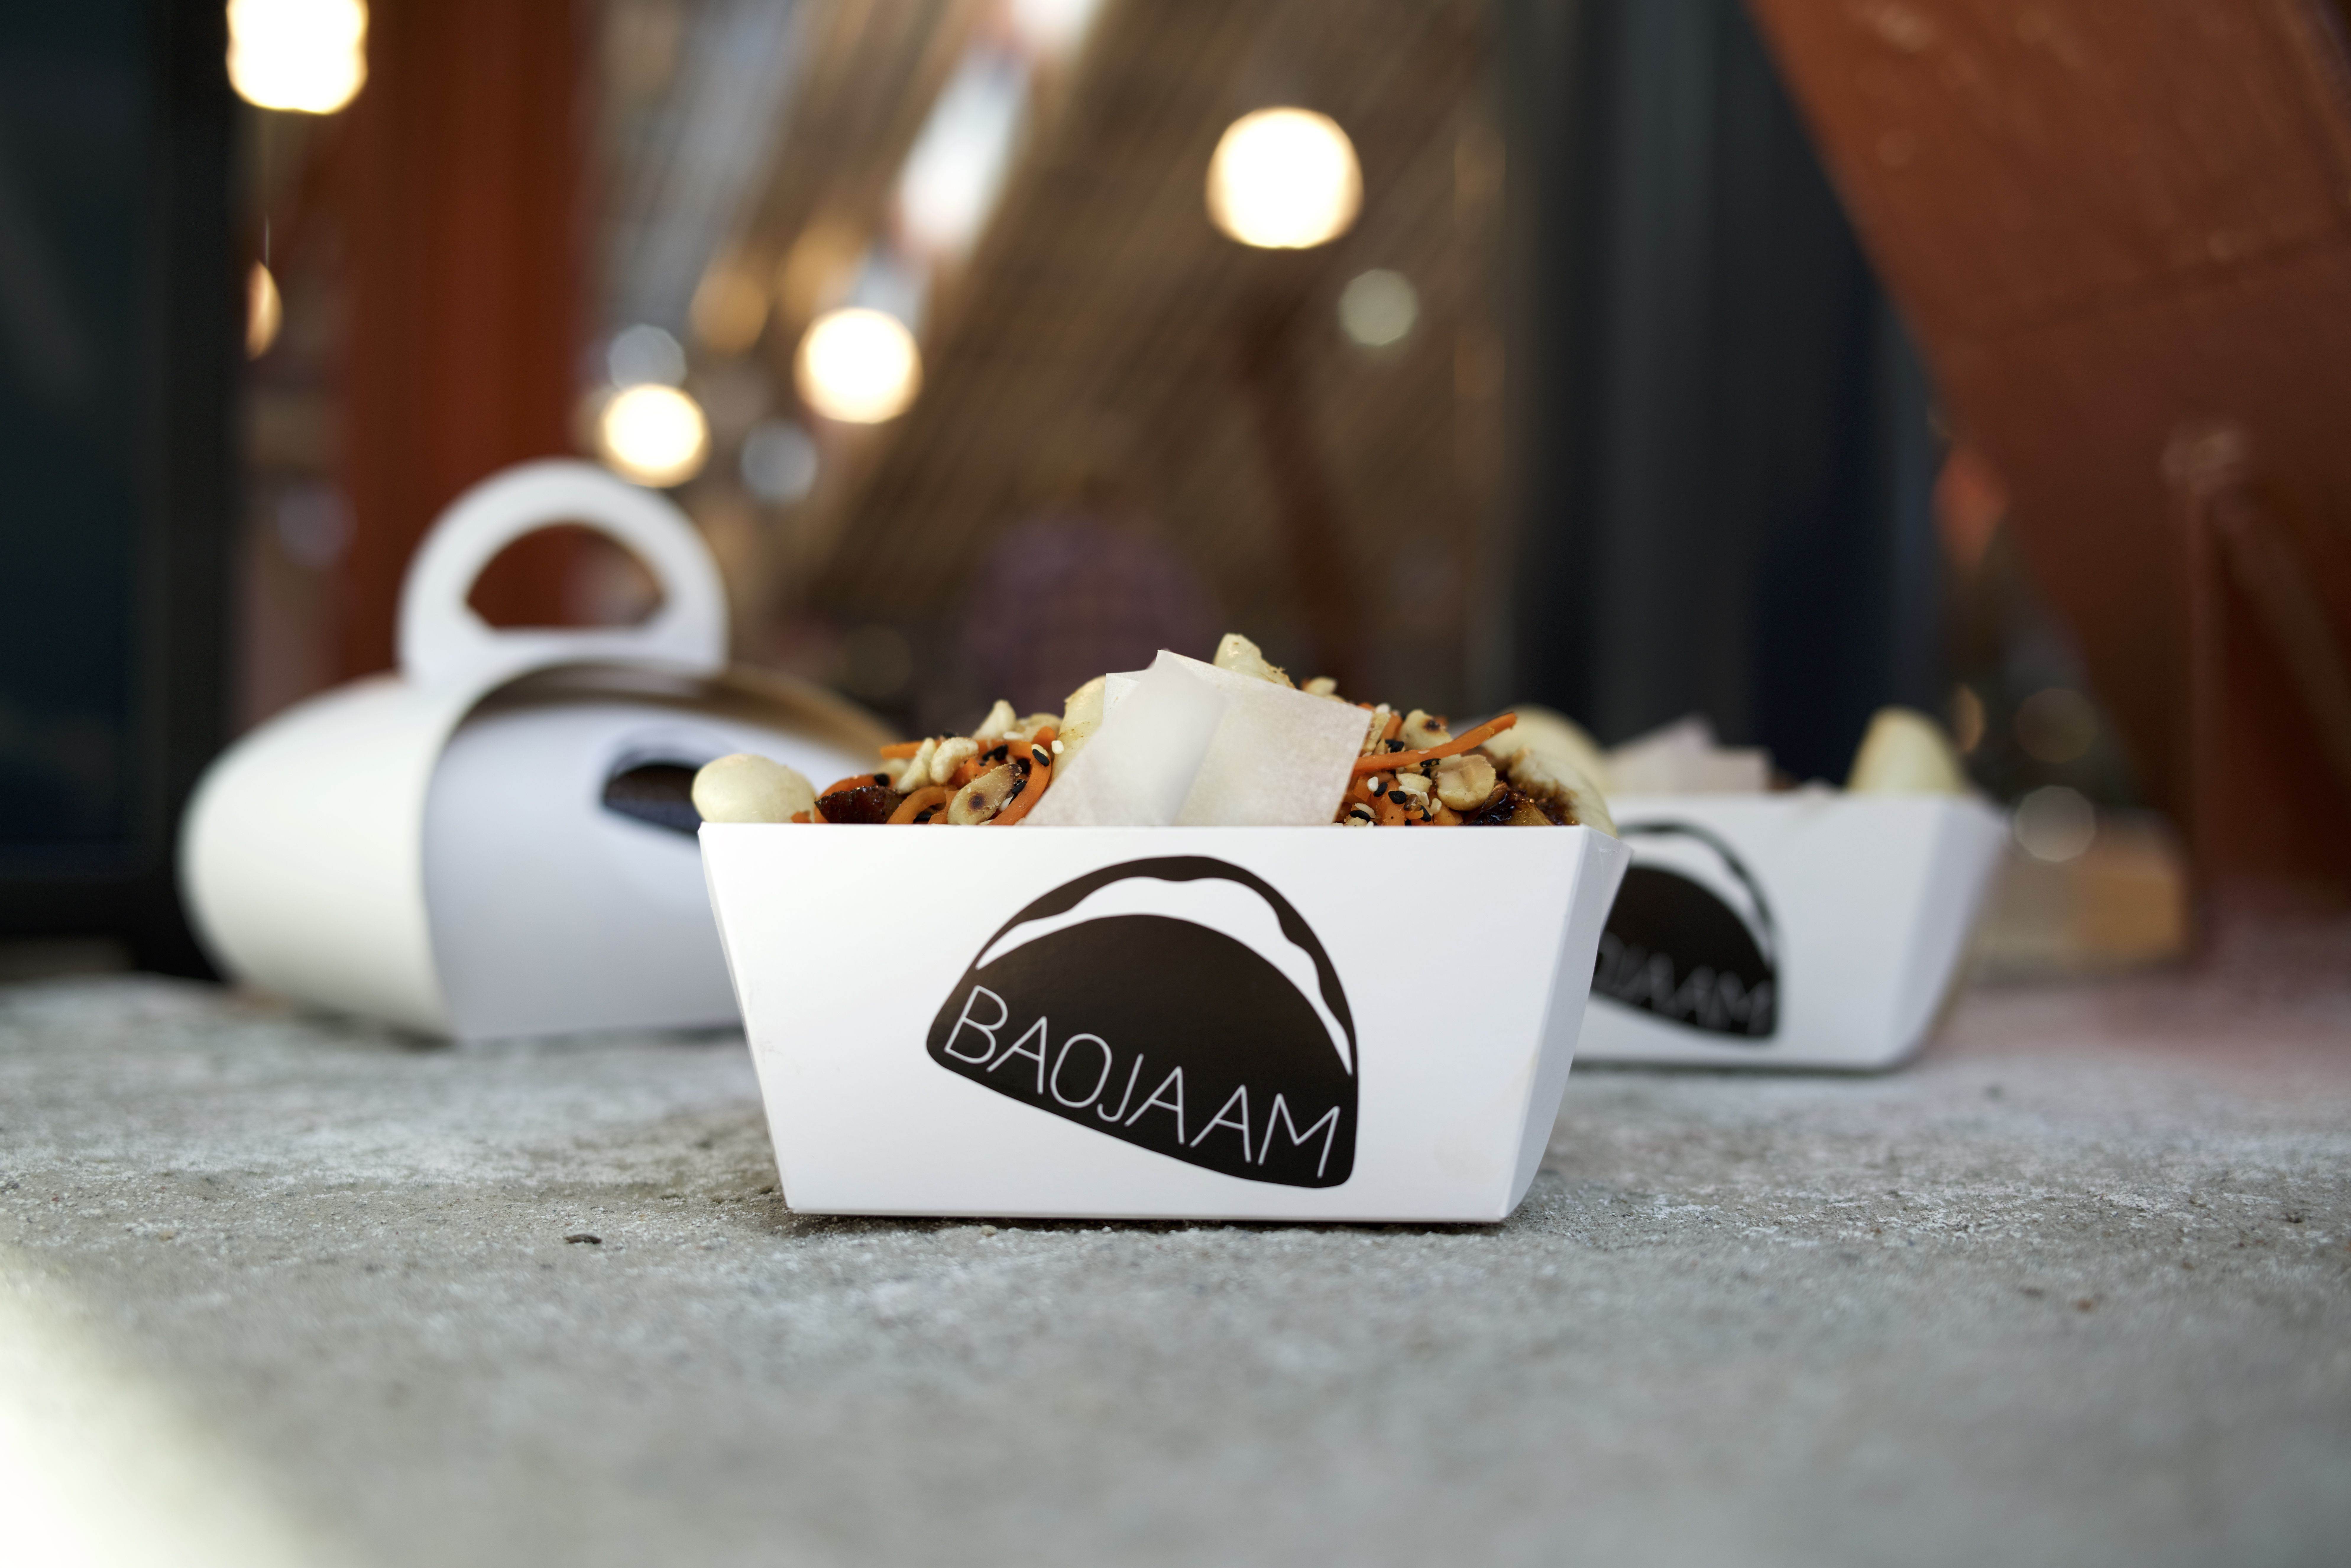 adcf765ac8c Baojaam's bao buns hanging around at the legendary Balti Jaama Turg in  Tallinn. Photo by Pepe Bruno Pictures.